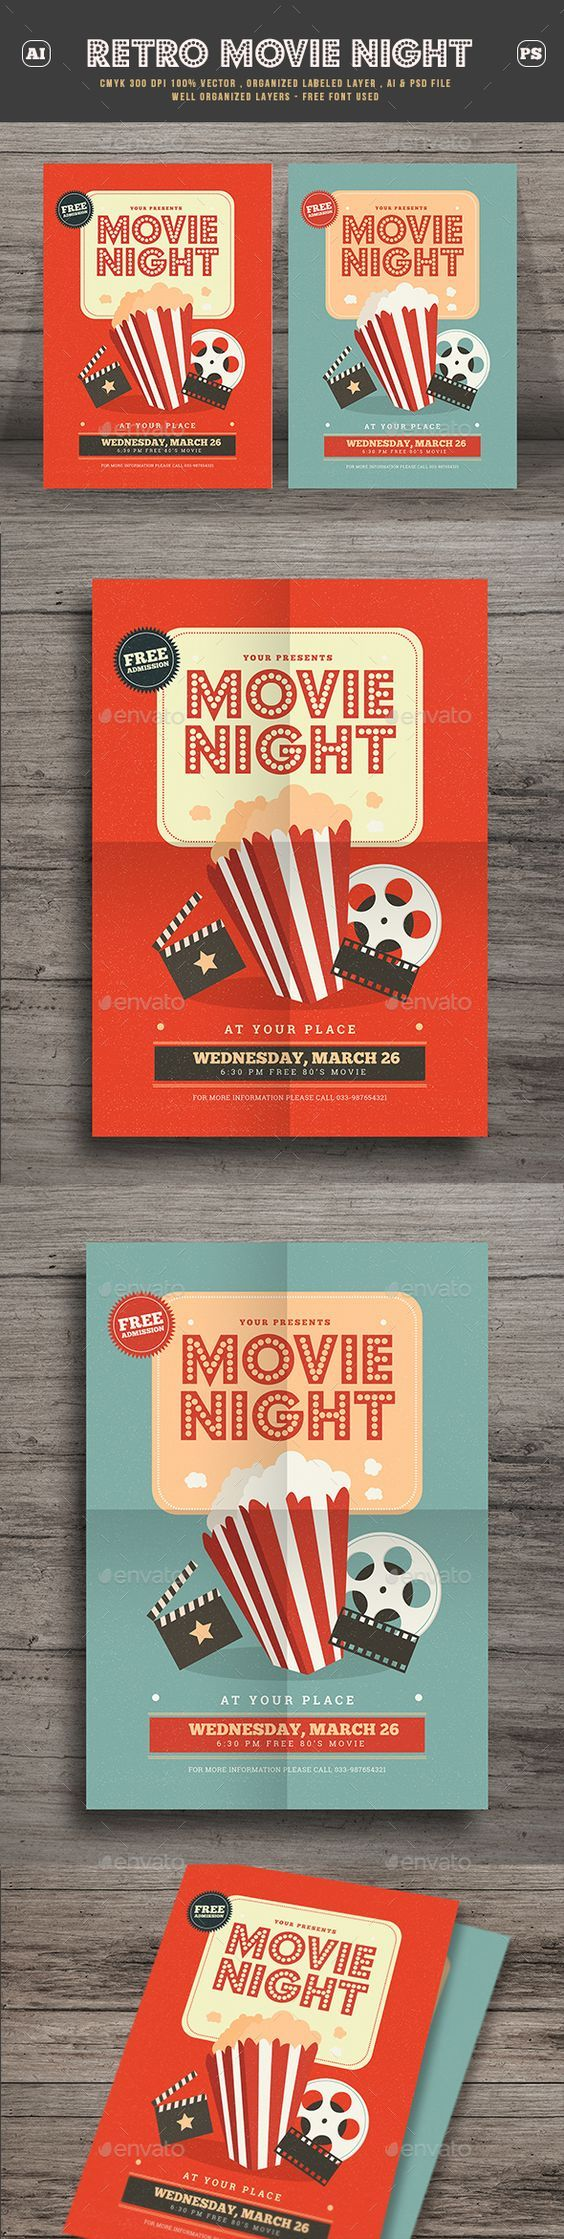 action, blockbuster, campus, cinema, clapboard, comedy, drama, entertainment, event, fest, festival, film, film award, filmstrip, flyer, holywood, movie, movie flyer, movie night, movie session, night, old, popcorn, poster, retro, theater, ticket